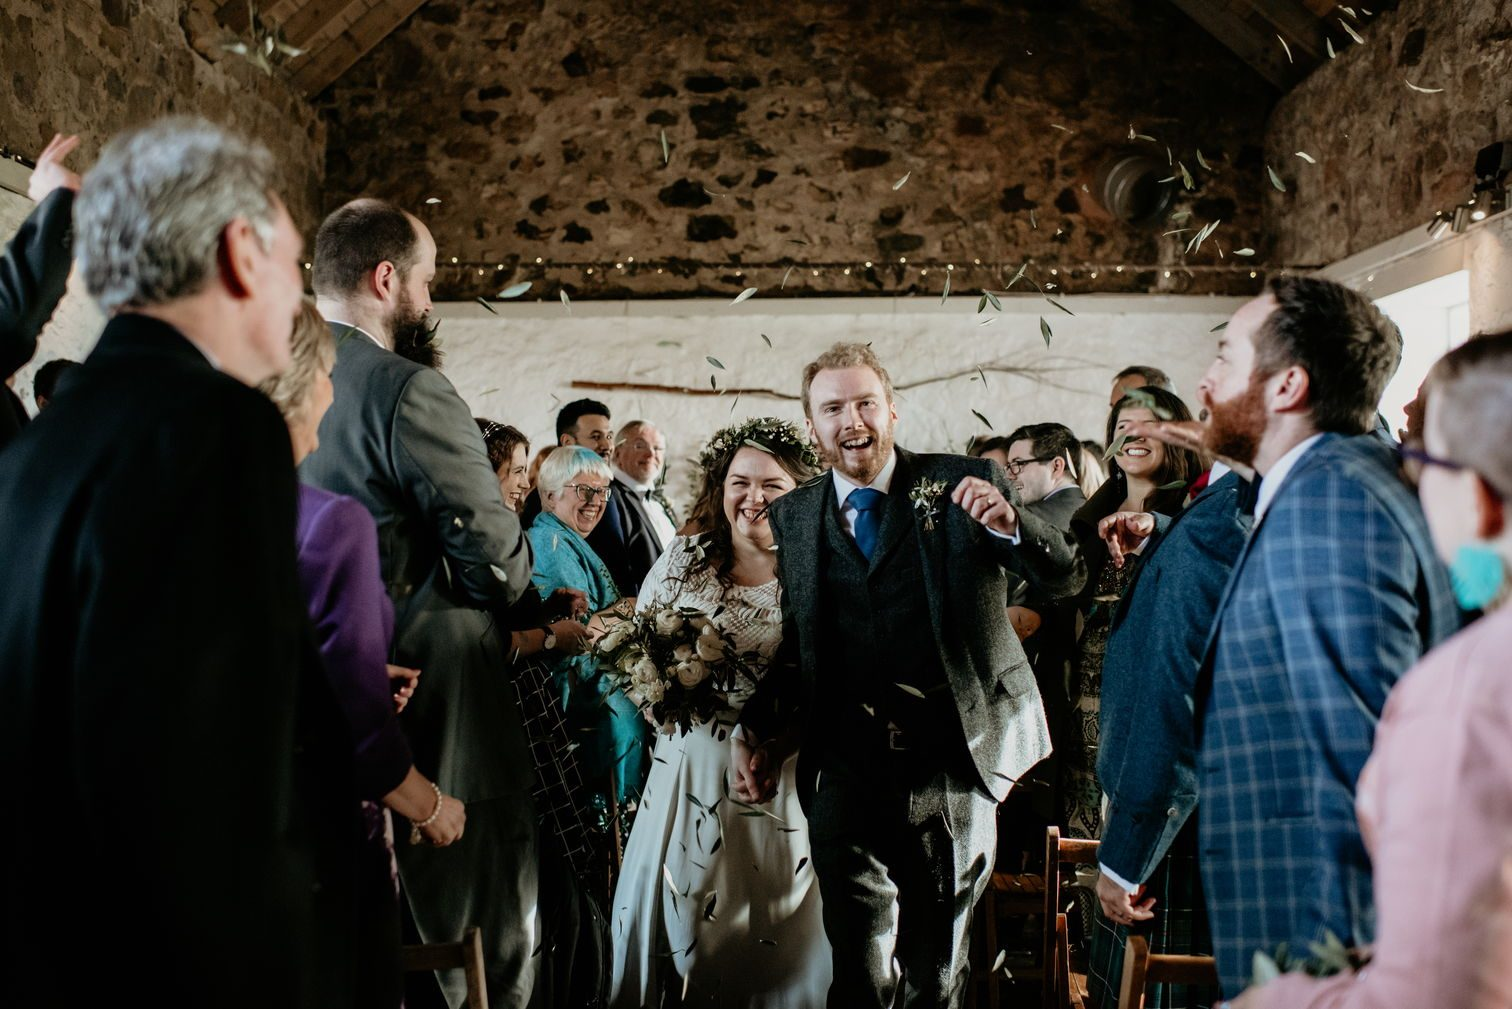 Alex and me walking back up the aisle, with people throwing olive leaves as confetti